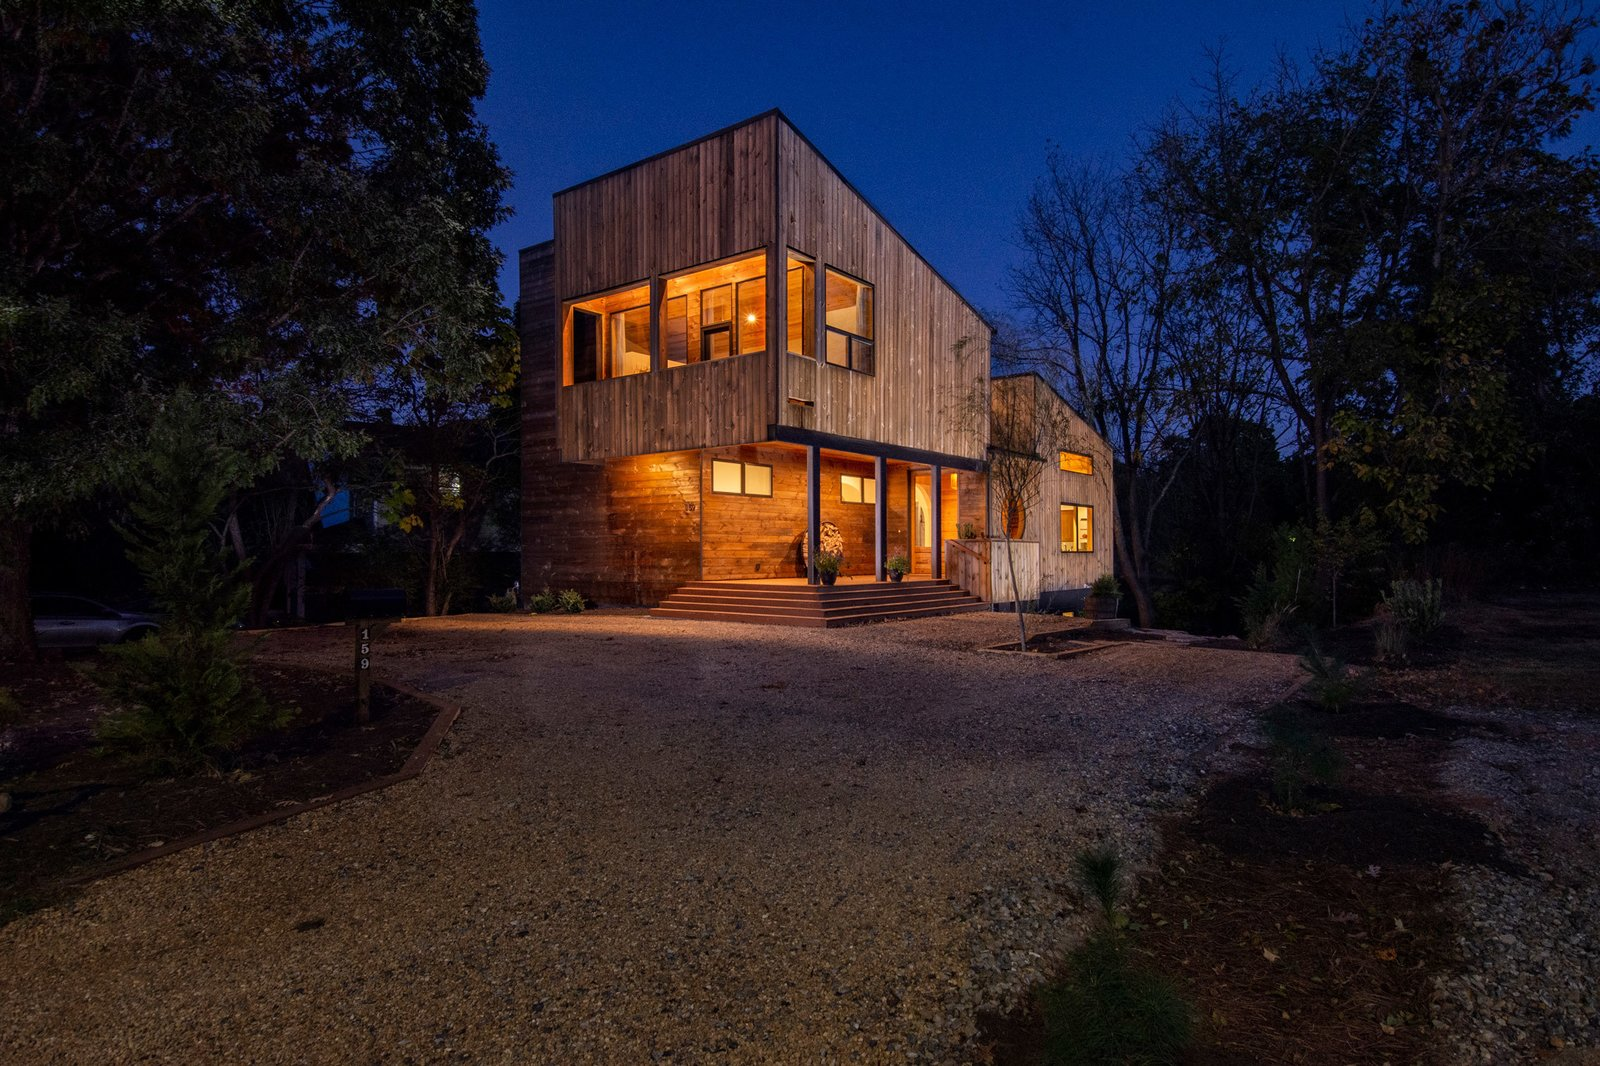 Exterior, Wood Siding Material, House Building Type, Metal Roof Material, and Shed RoofLine  Westwood House